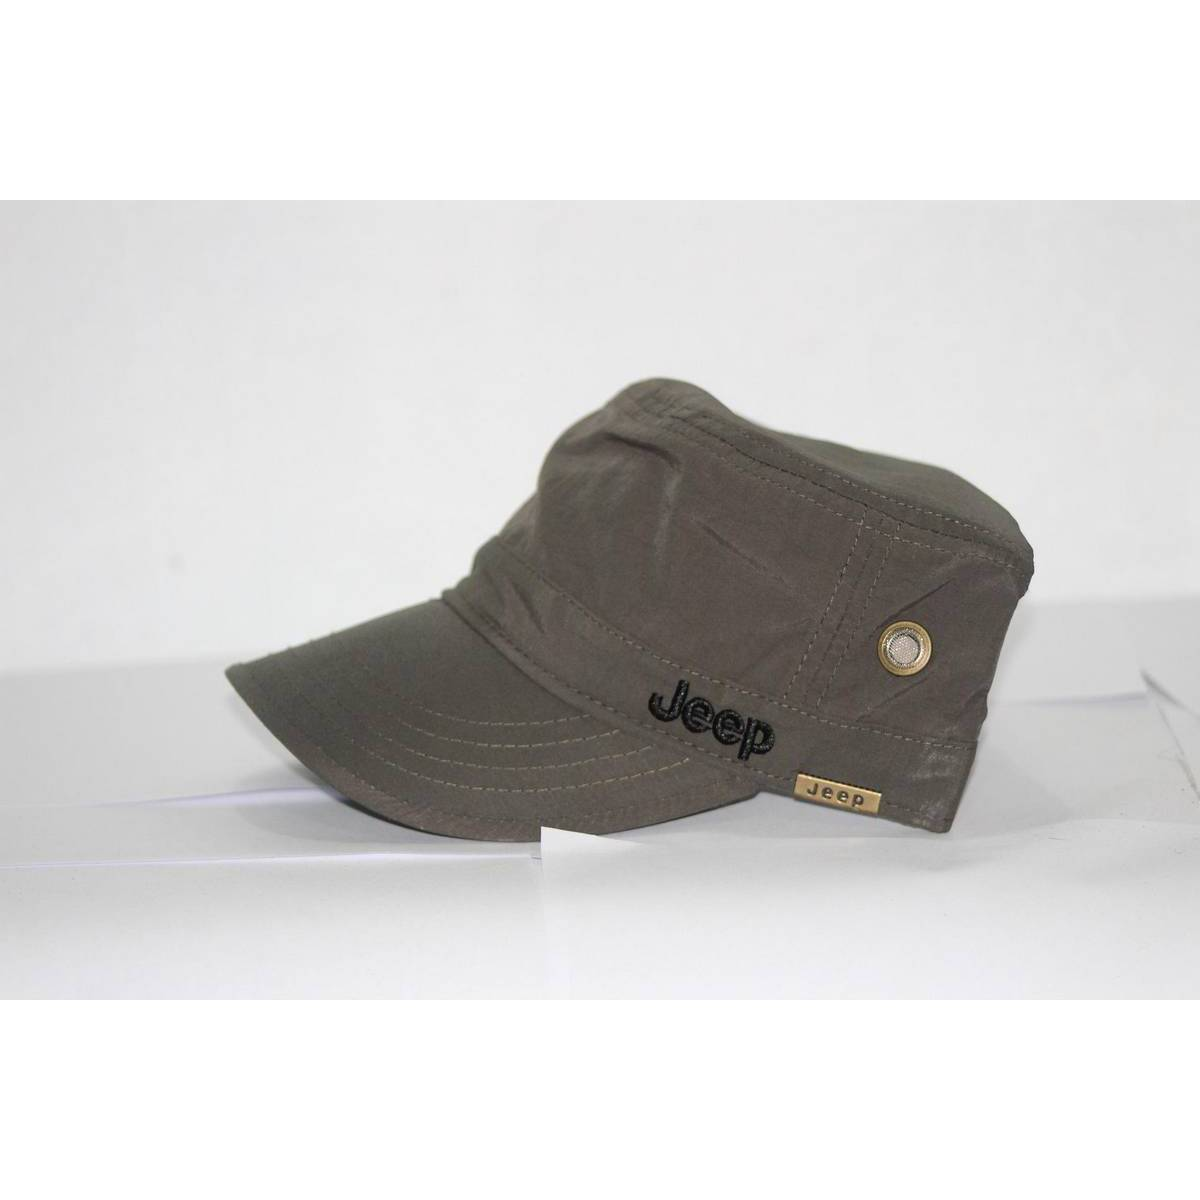 Army Style Jeep Cap for Fashion and Sun Protection